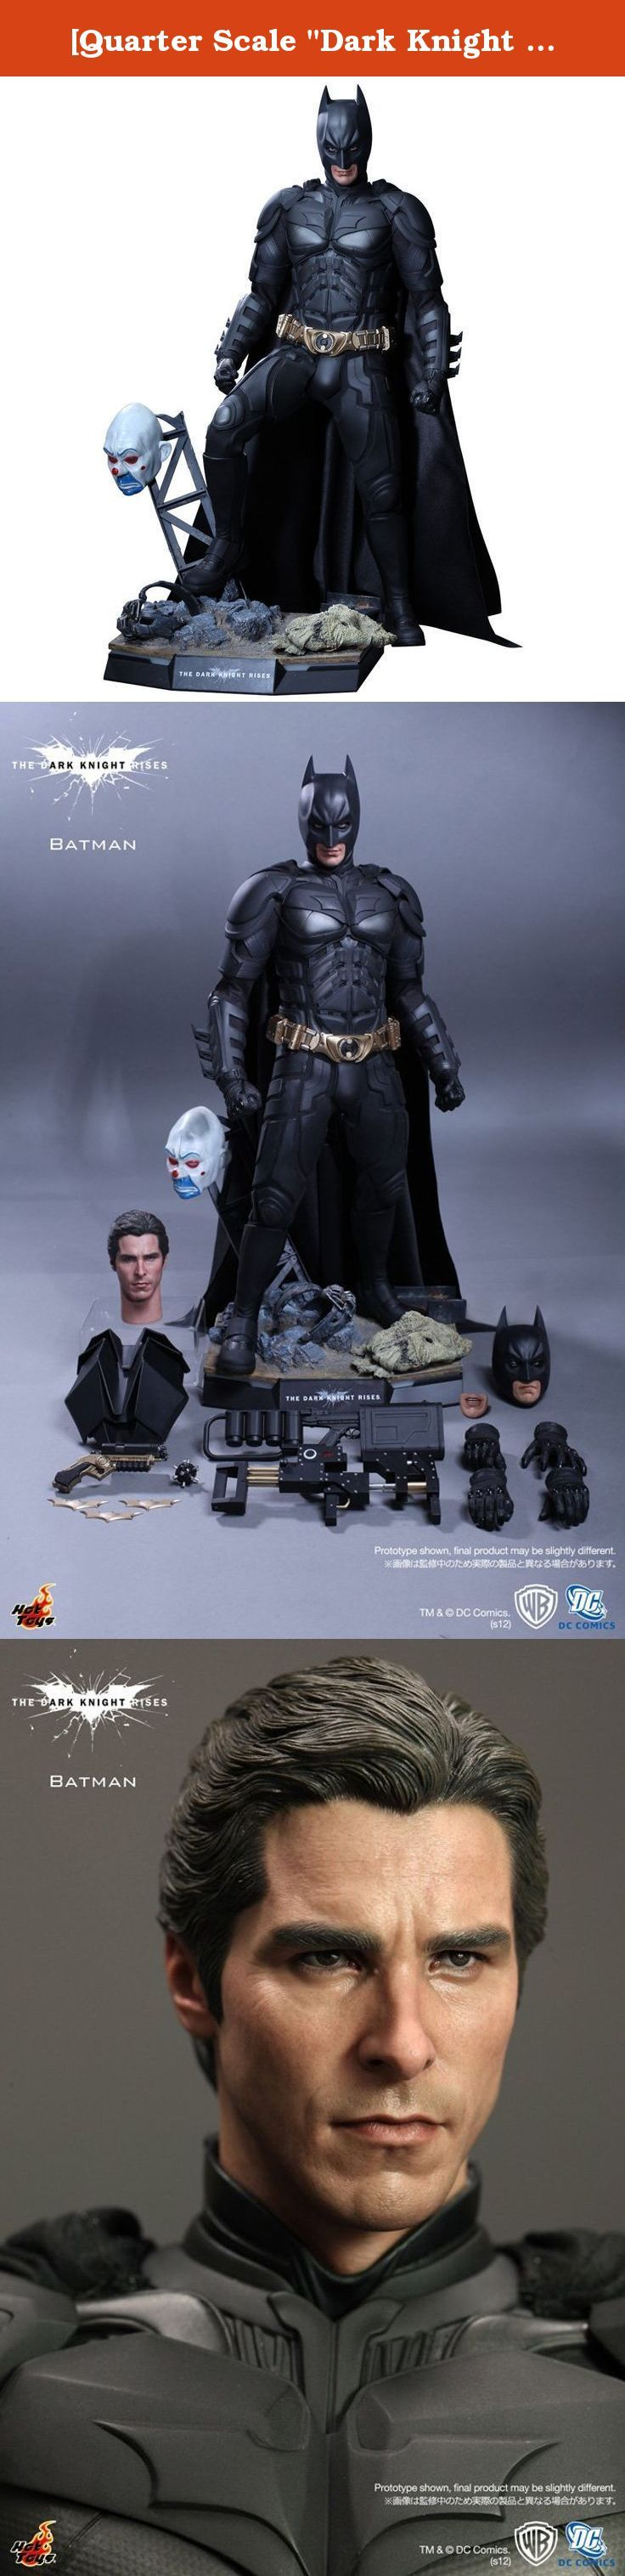 "[Quarter Scale ""Dark Knight Rising"" 1/4 scale figure Batman (japan import). Sideshow Hot Toys Dark Knight Rises 1/4 Scale Batman Collectible Figure."